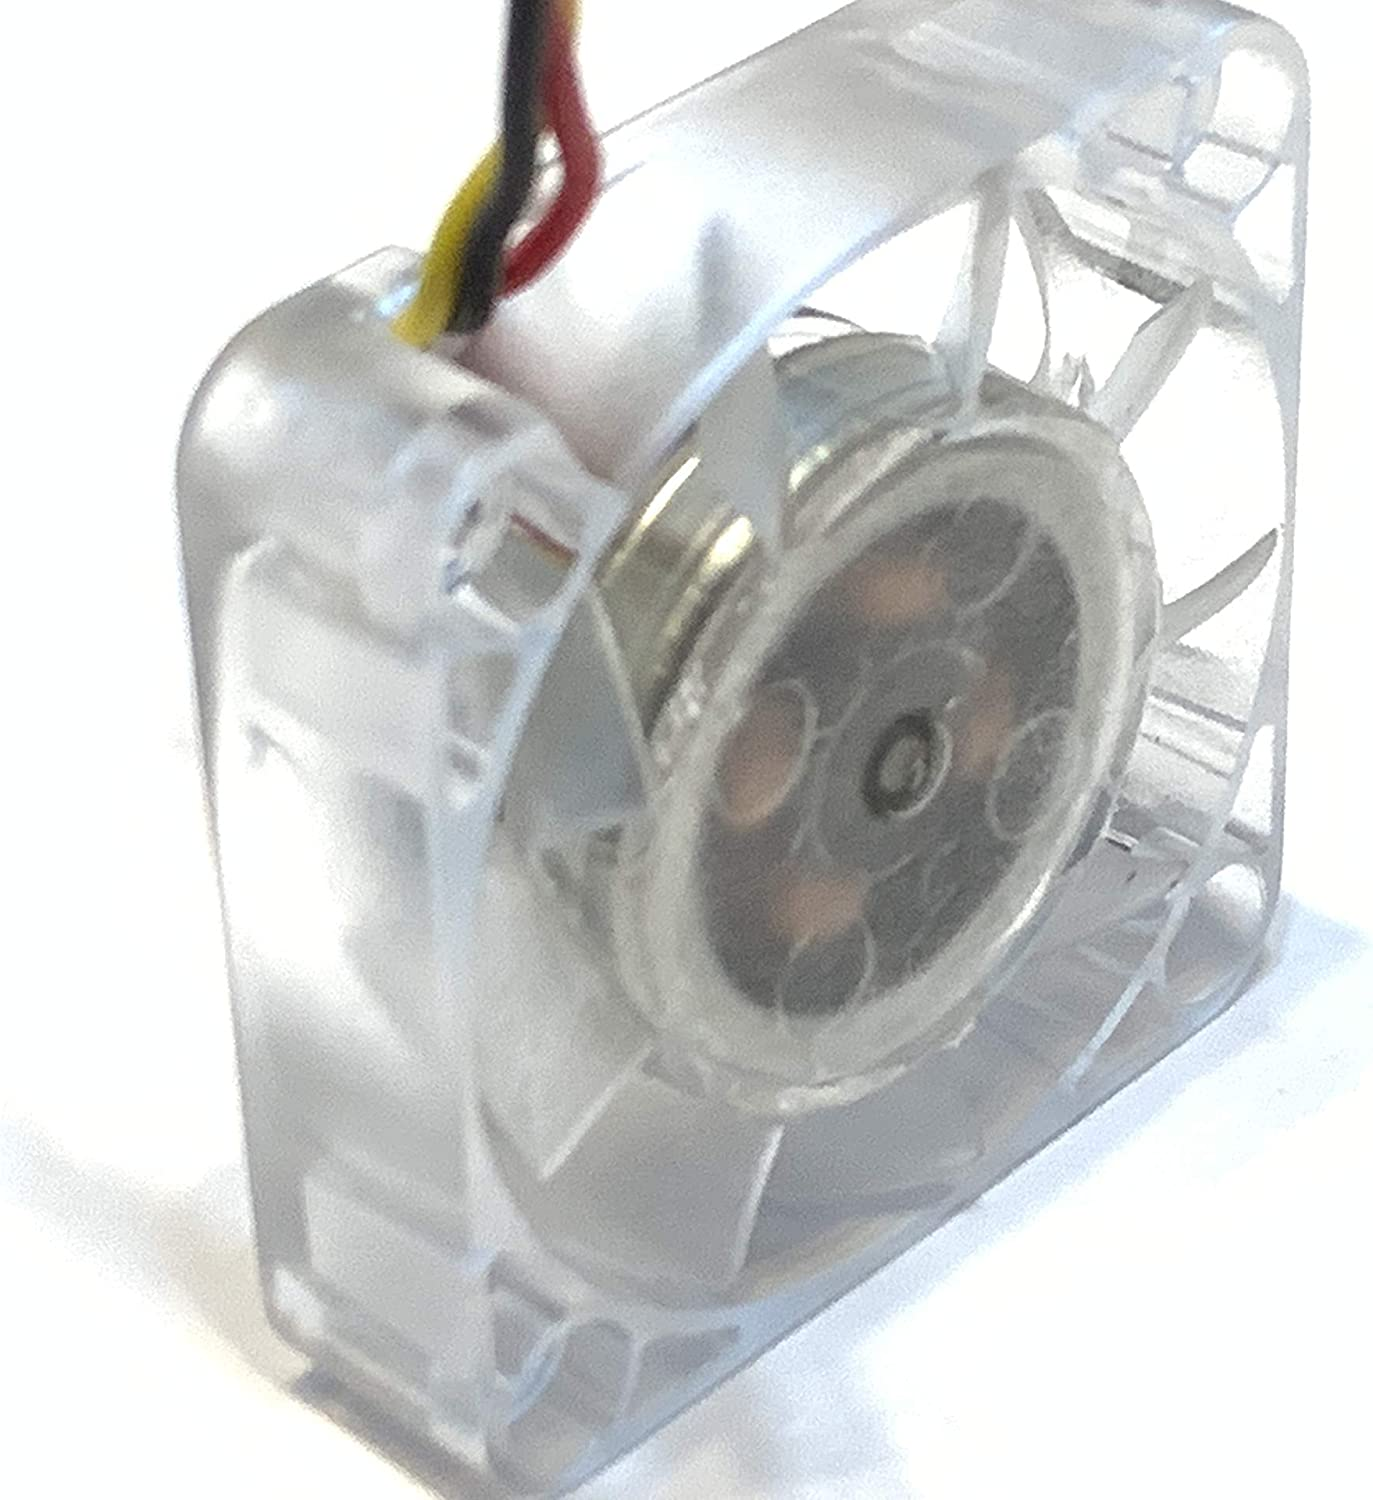 2 Pieces Blue LED mini 12V 4010 40x40x10mm DC Cooling Fan micro brushless A15